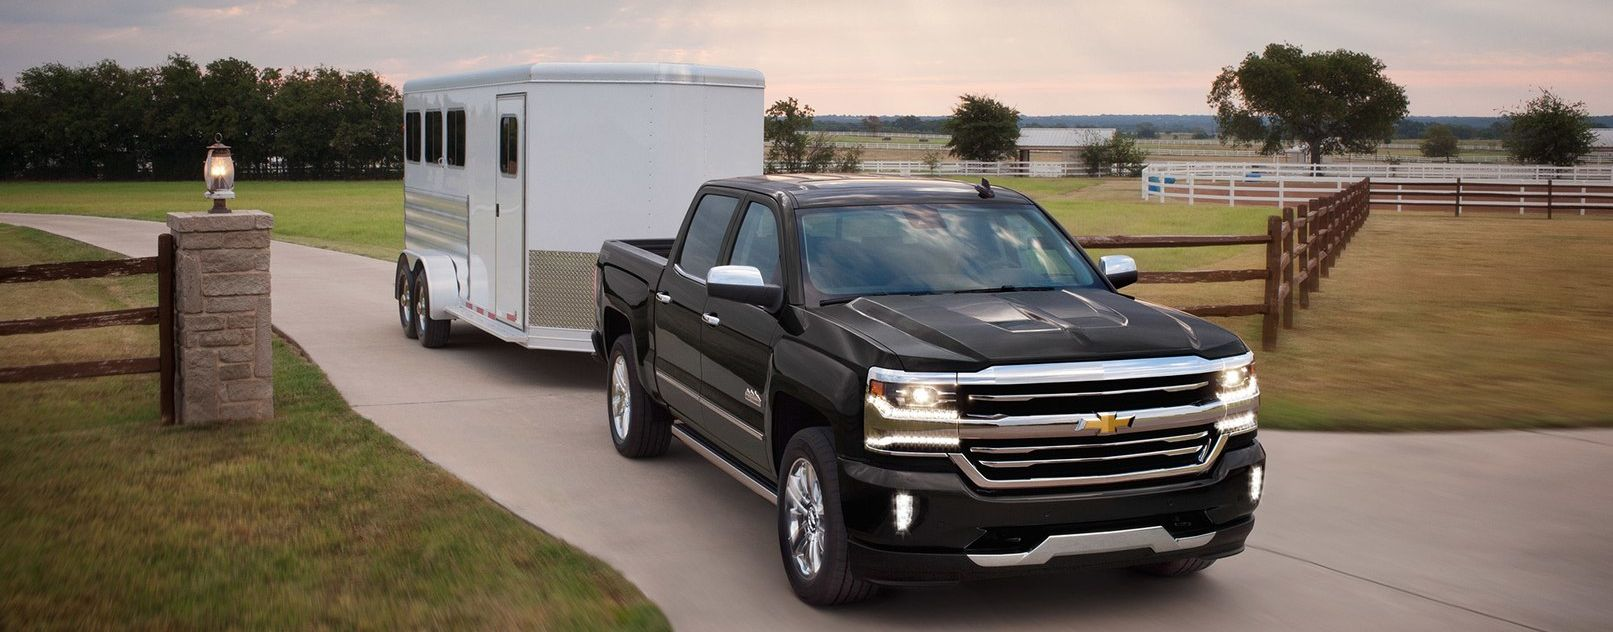 2018 Chevrolet Silverado 1500 Financing near Edmond, OK